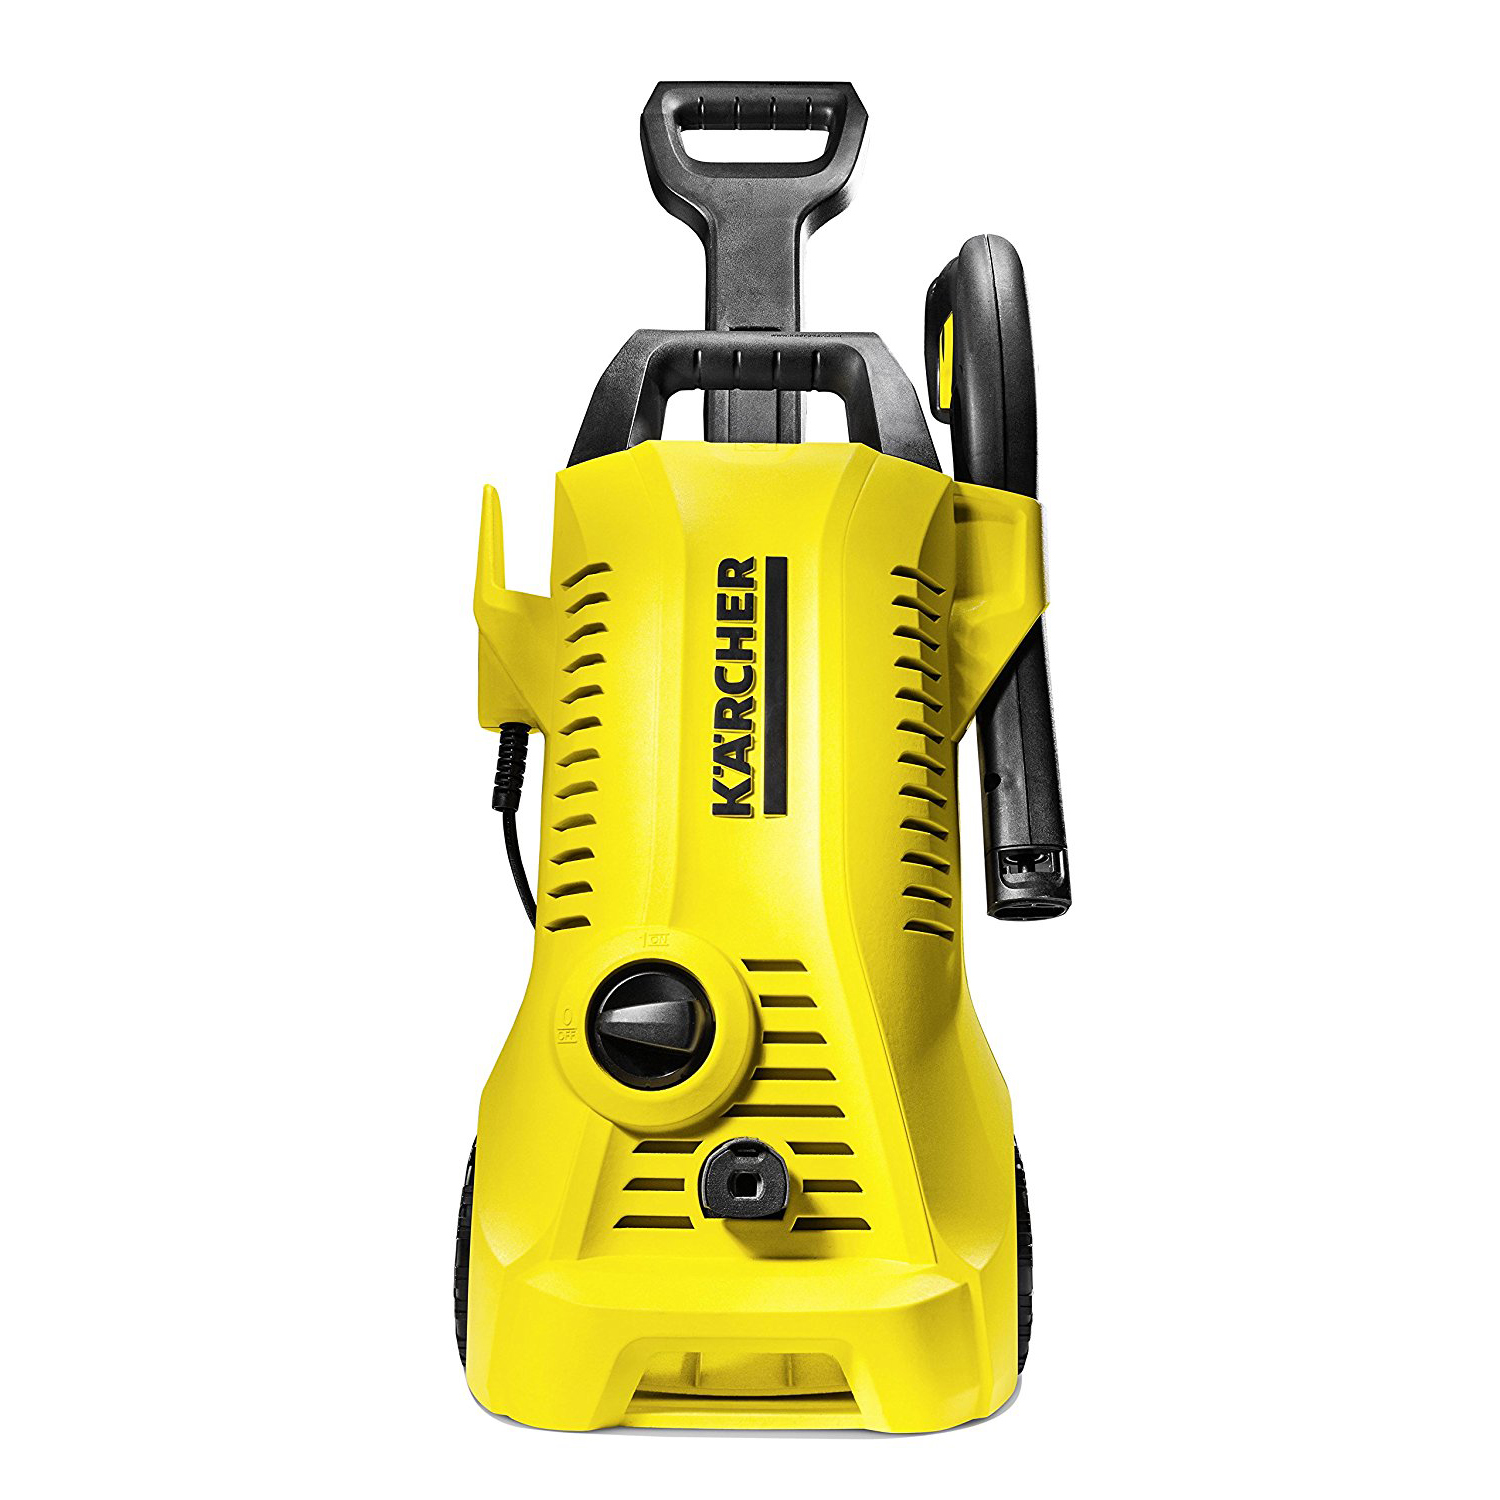 karcher k2 full control pressure washer 1400w 110 bar. Black Bedroom Furniture Sets. Home Design Ideas